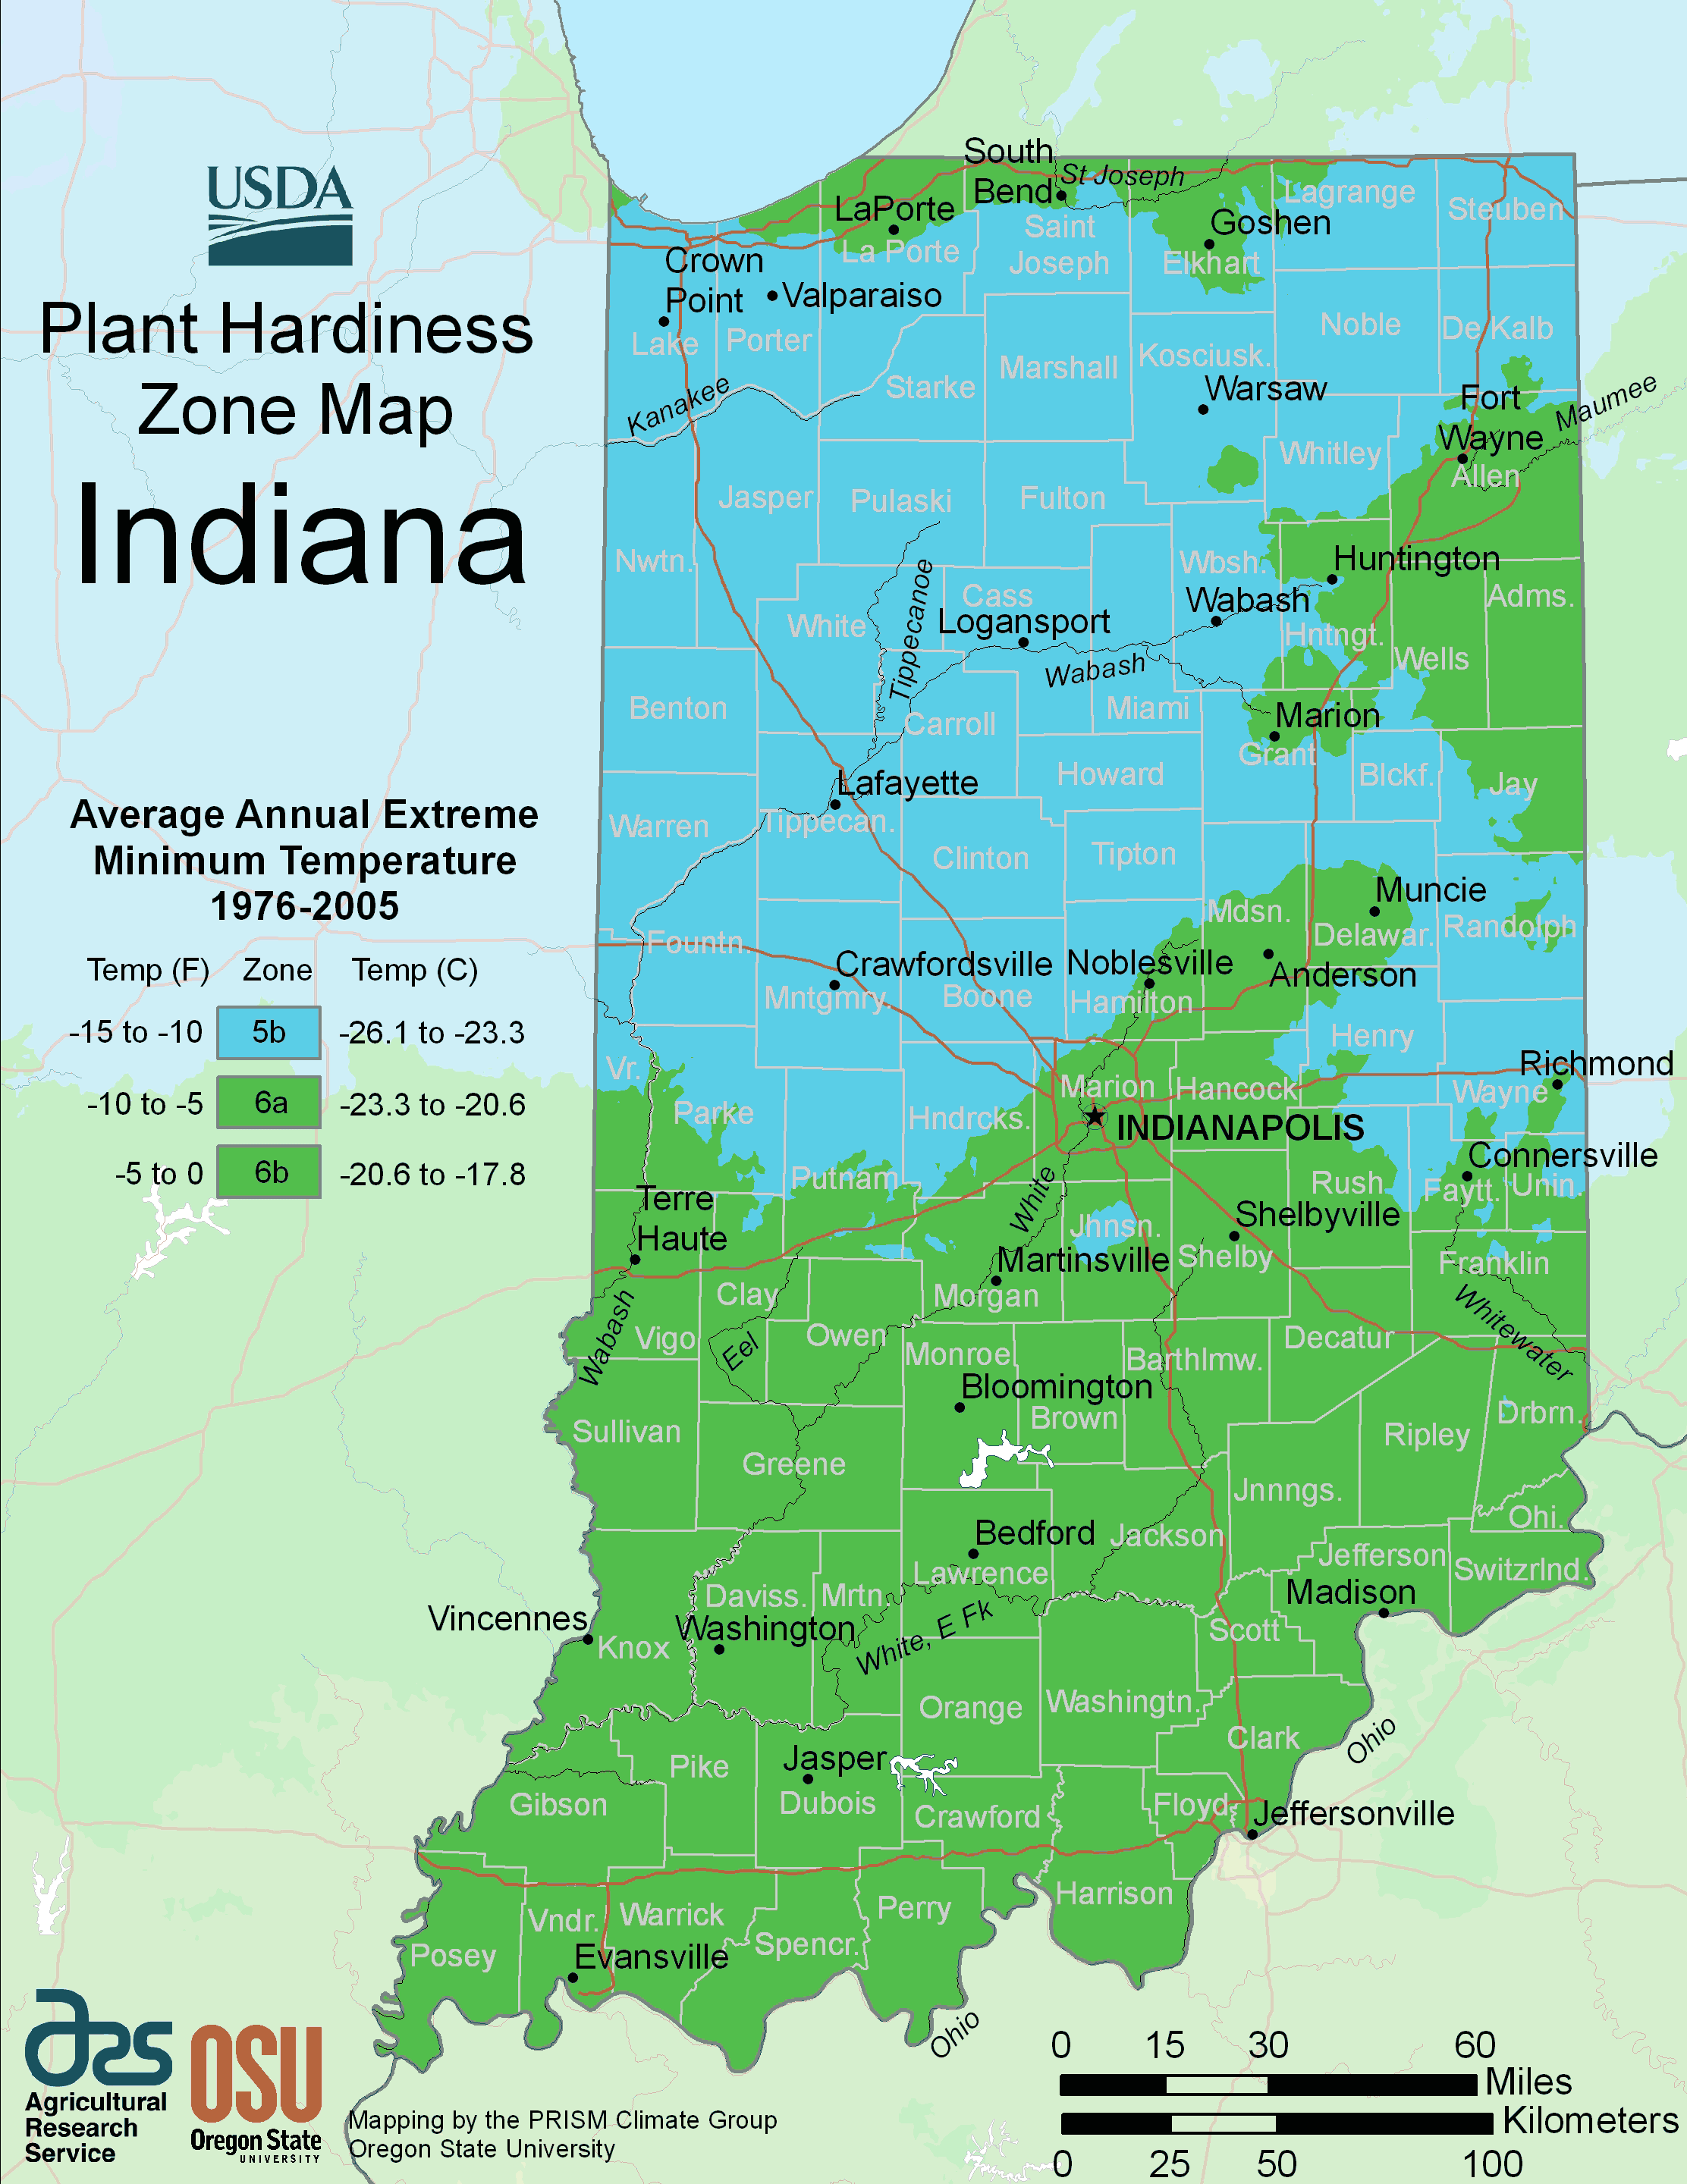 Indiana Plant Hardiness Zone Map Mapsofnet - Map of jasper oregon